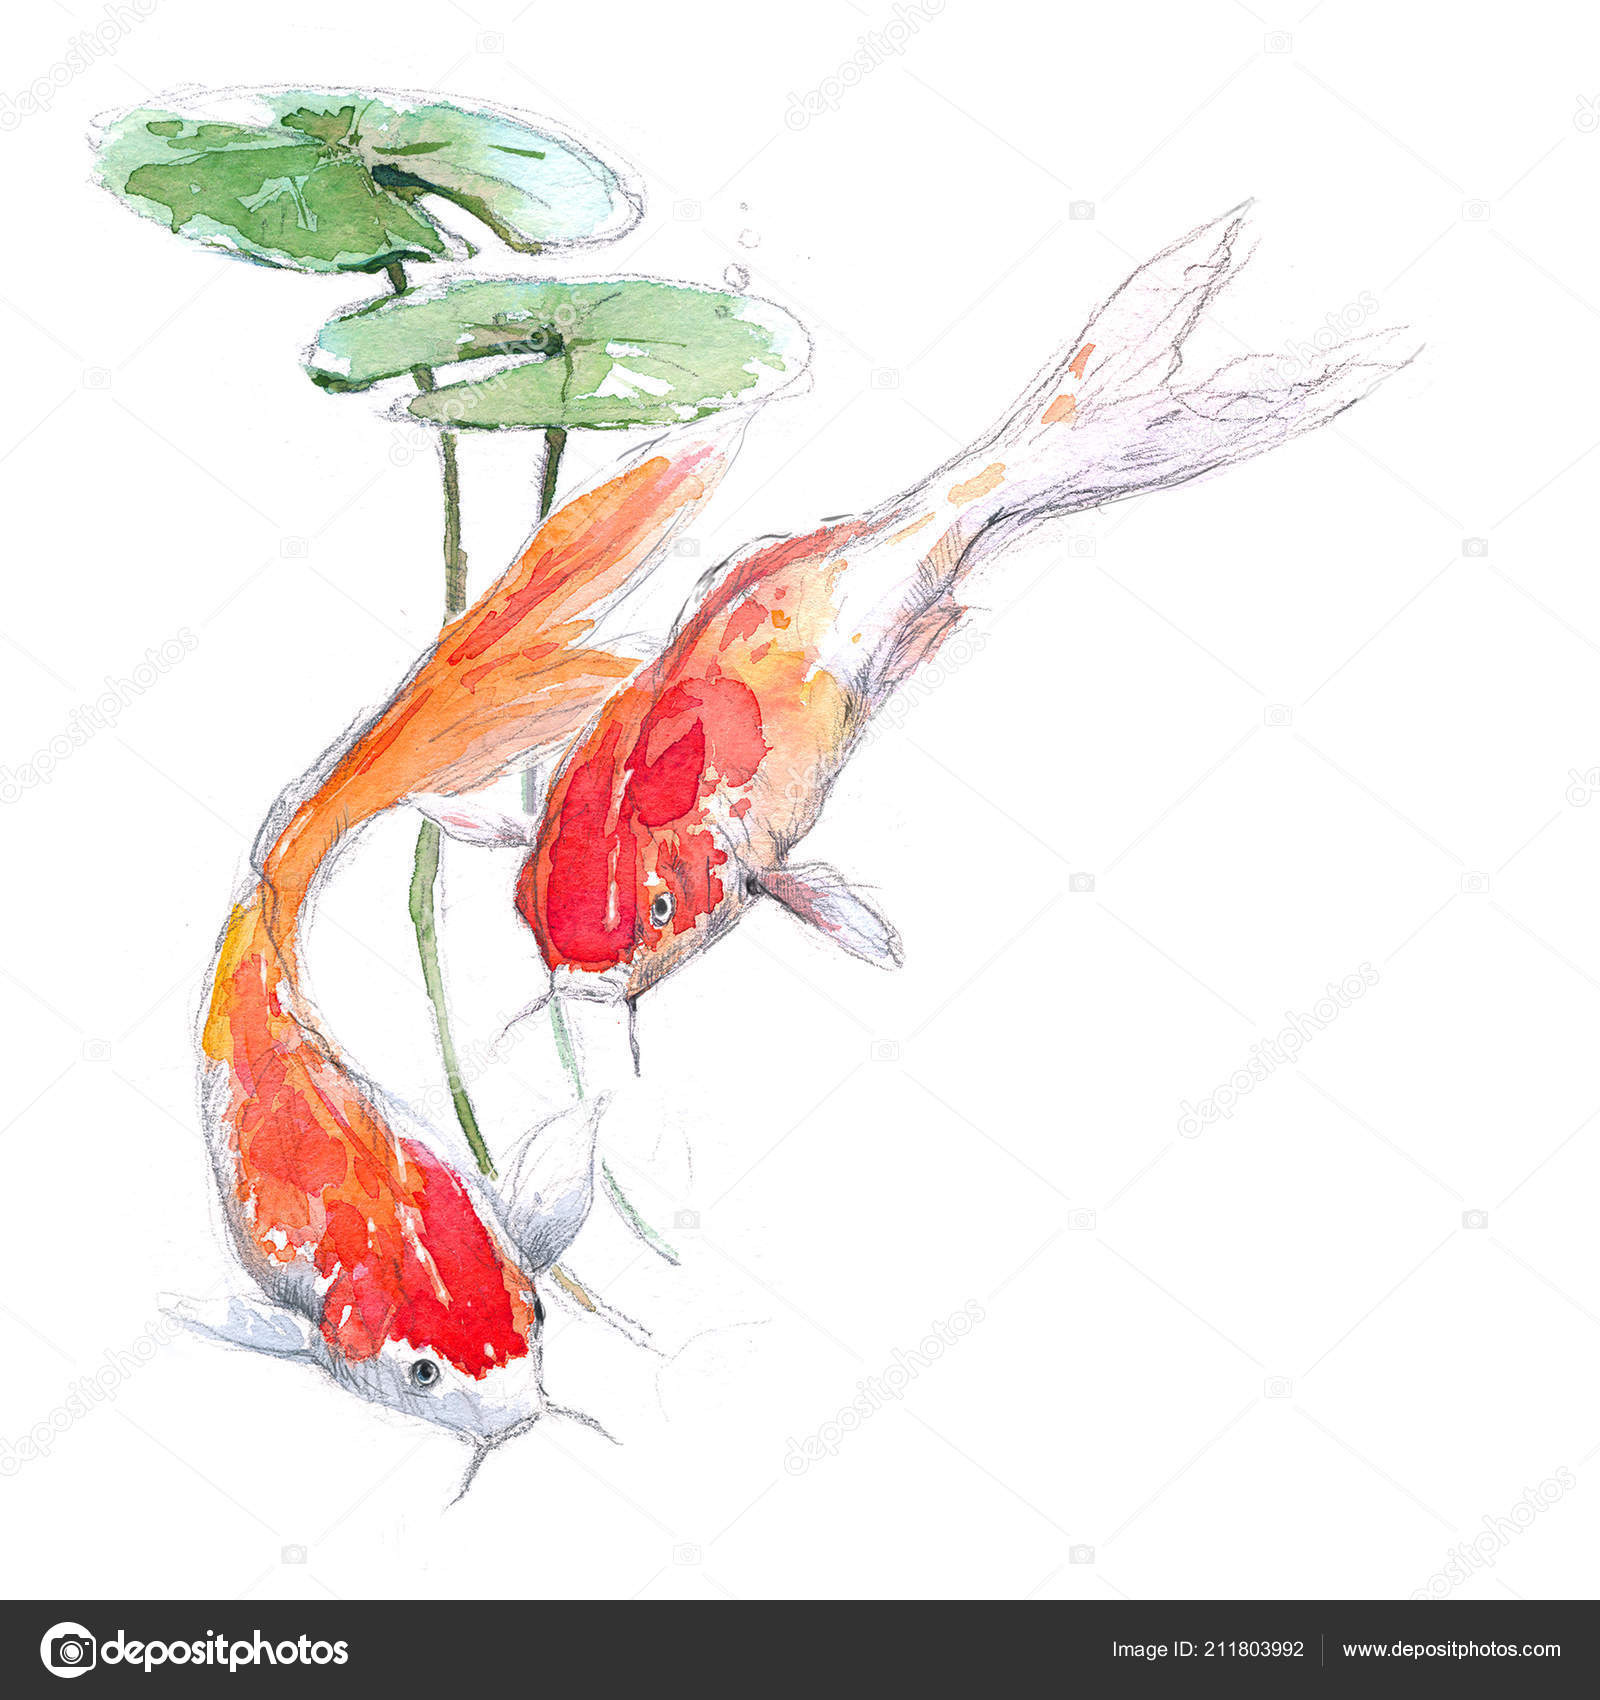 Watercolor Sketch Illustration Gold Koi Hand Drawn Aquarium Fish